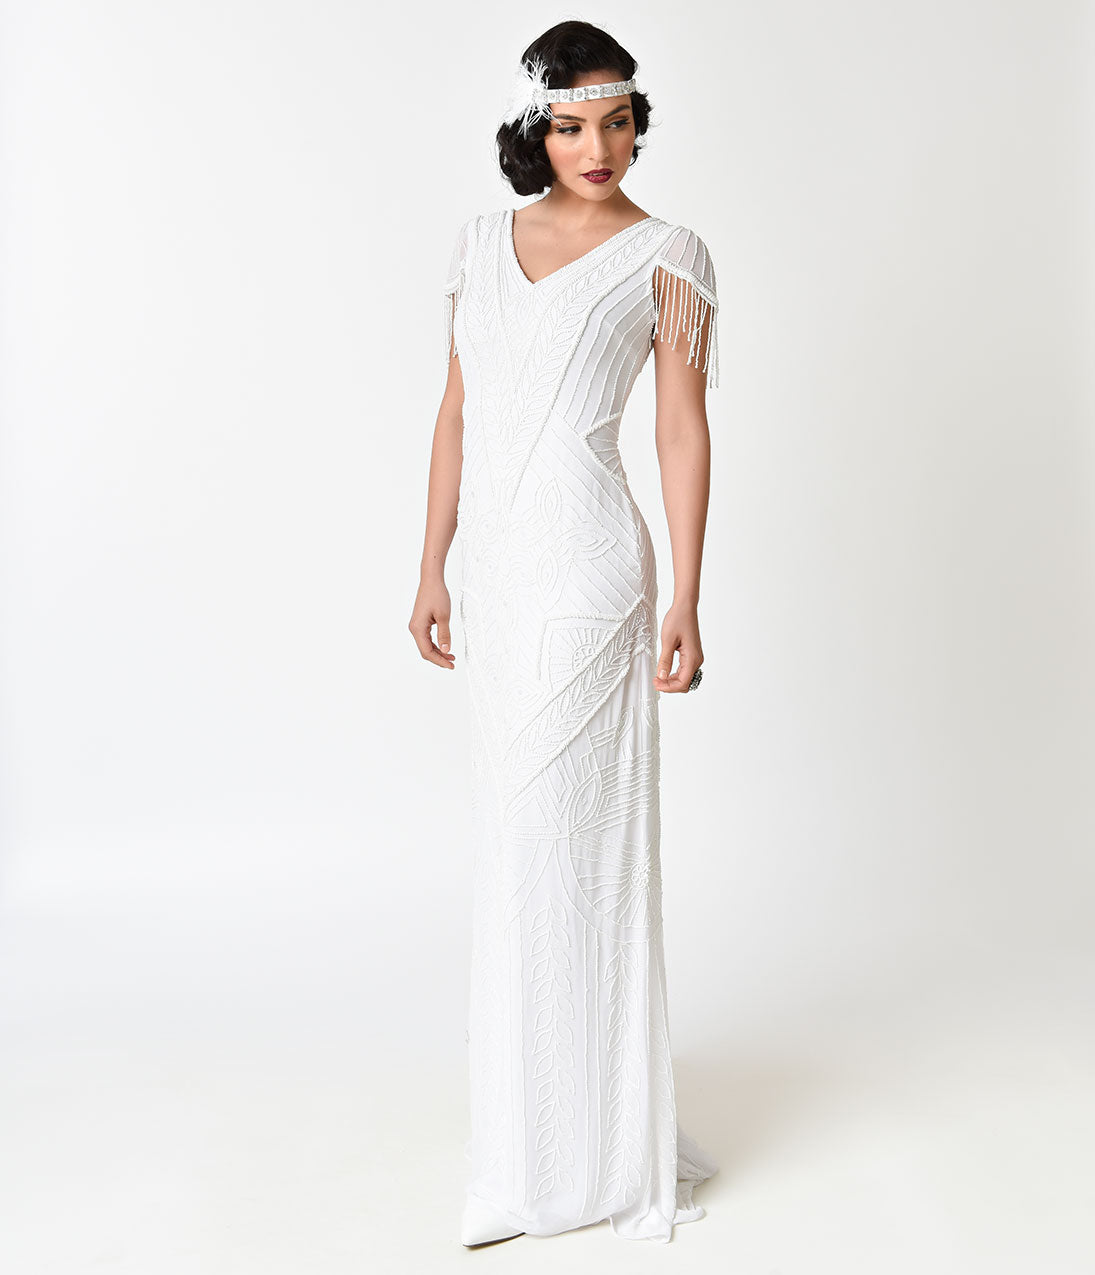 1920s Wedding Dresses- Art Deco Style Frock and Frill White Sequin Beaded Birdelle Bridal Maxi Dress $318.00 AT vintagedancer.com